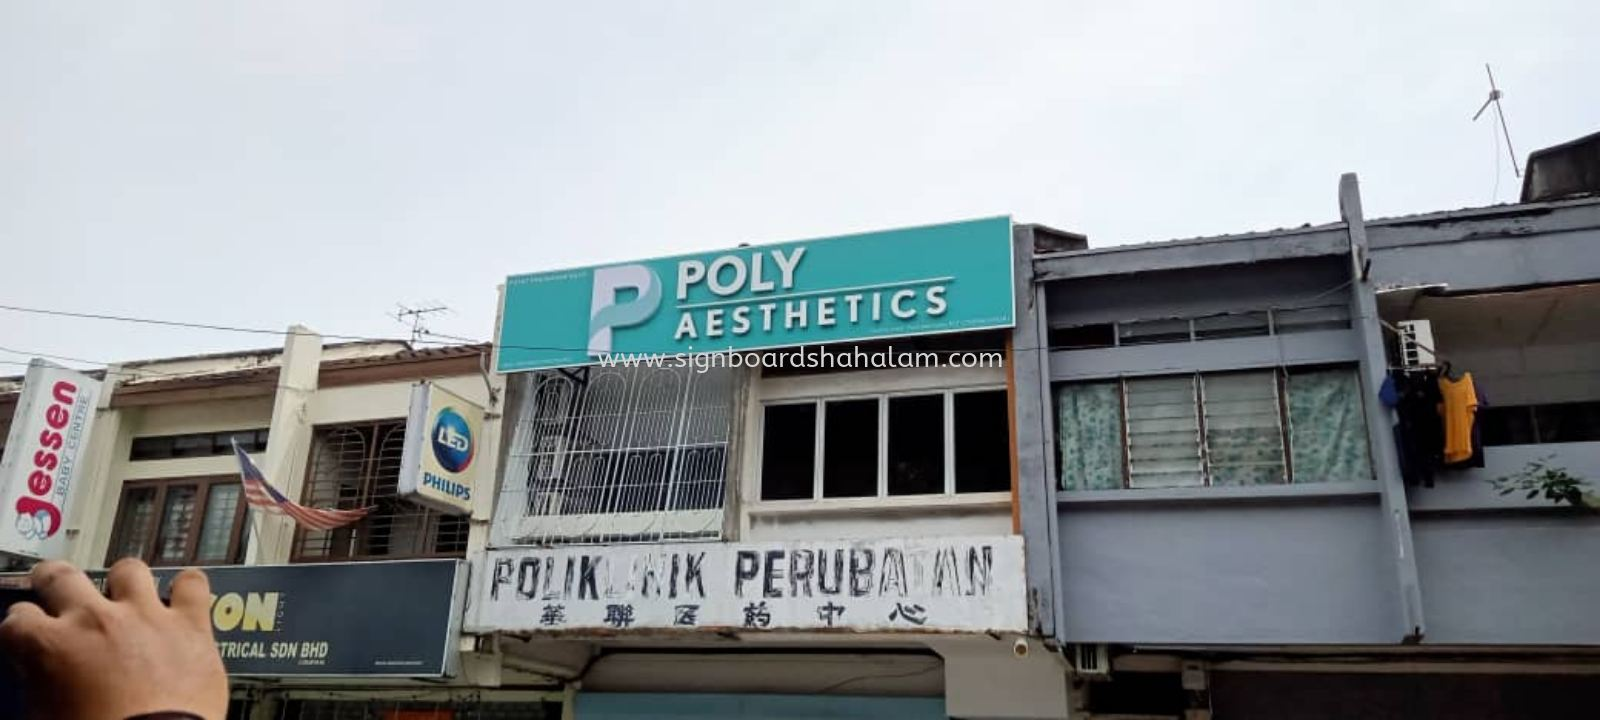 Signboard Poly Aesthetics, 3D Led Frontlit Signboard, 3D Box Up Signboard